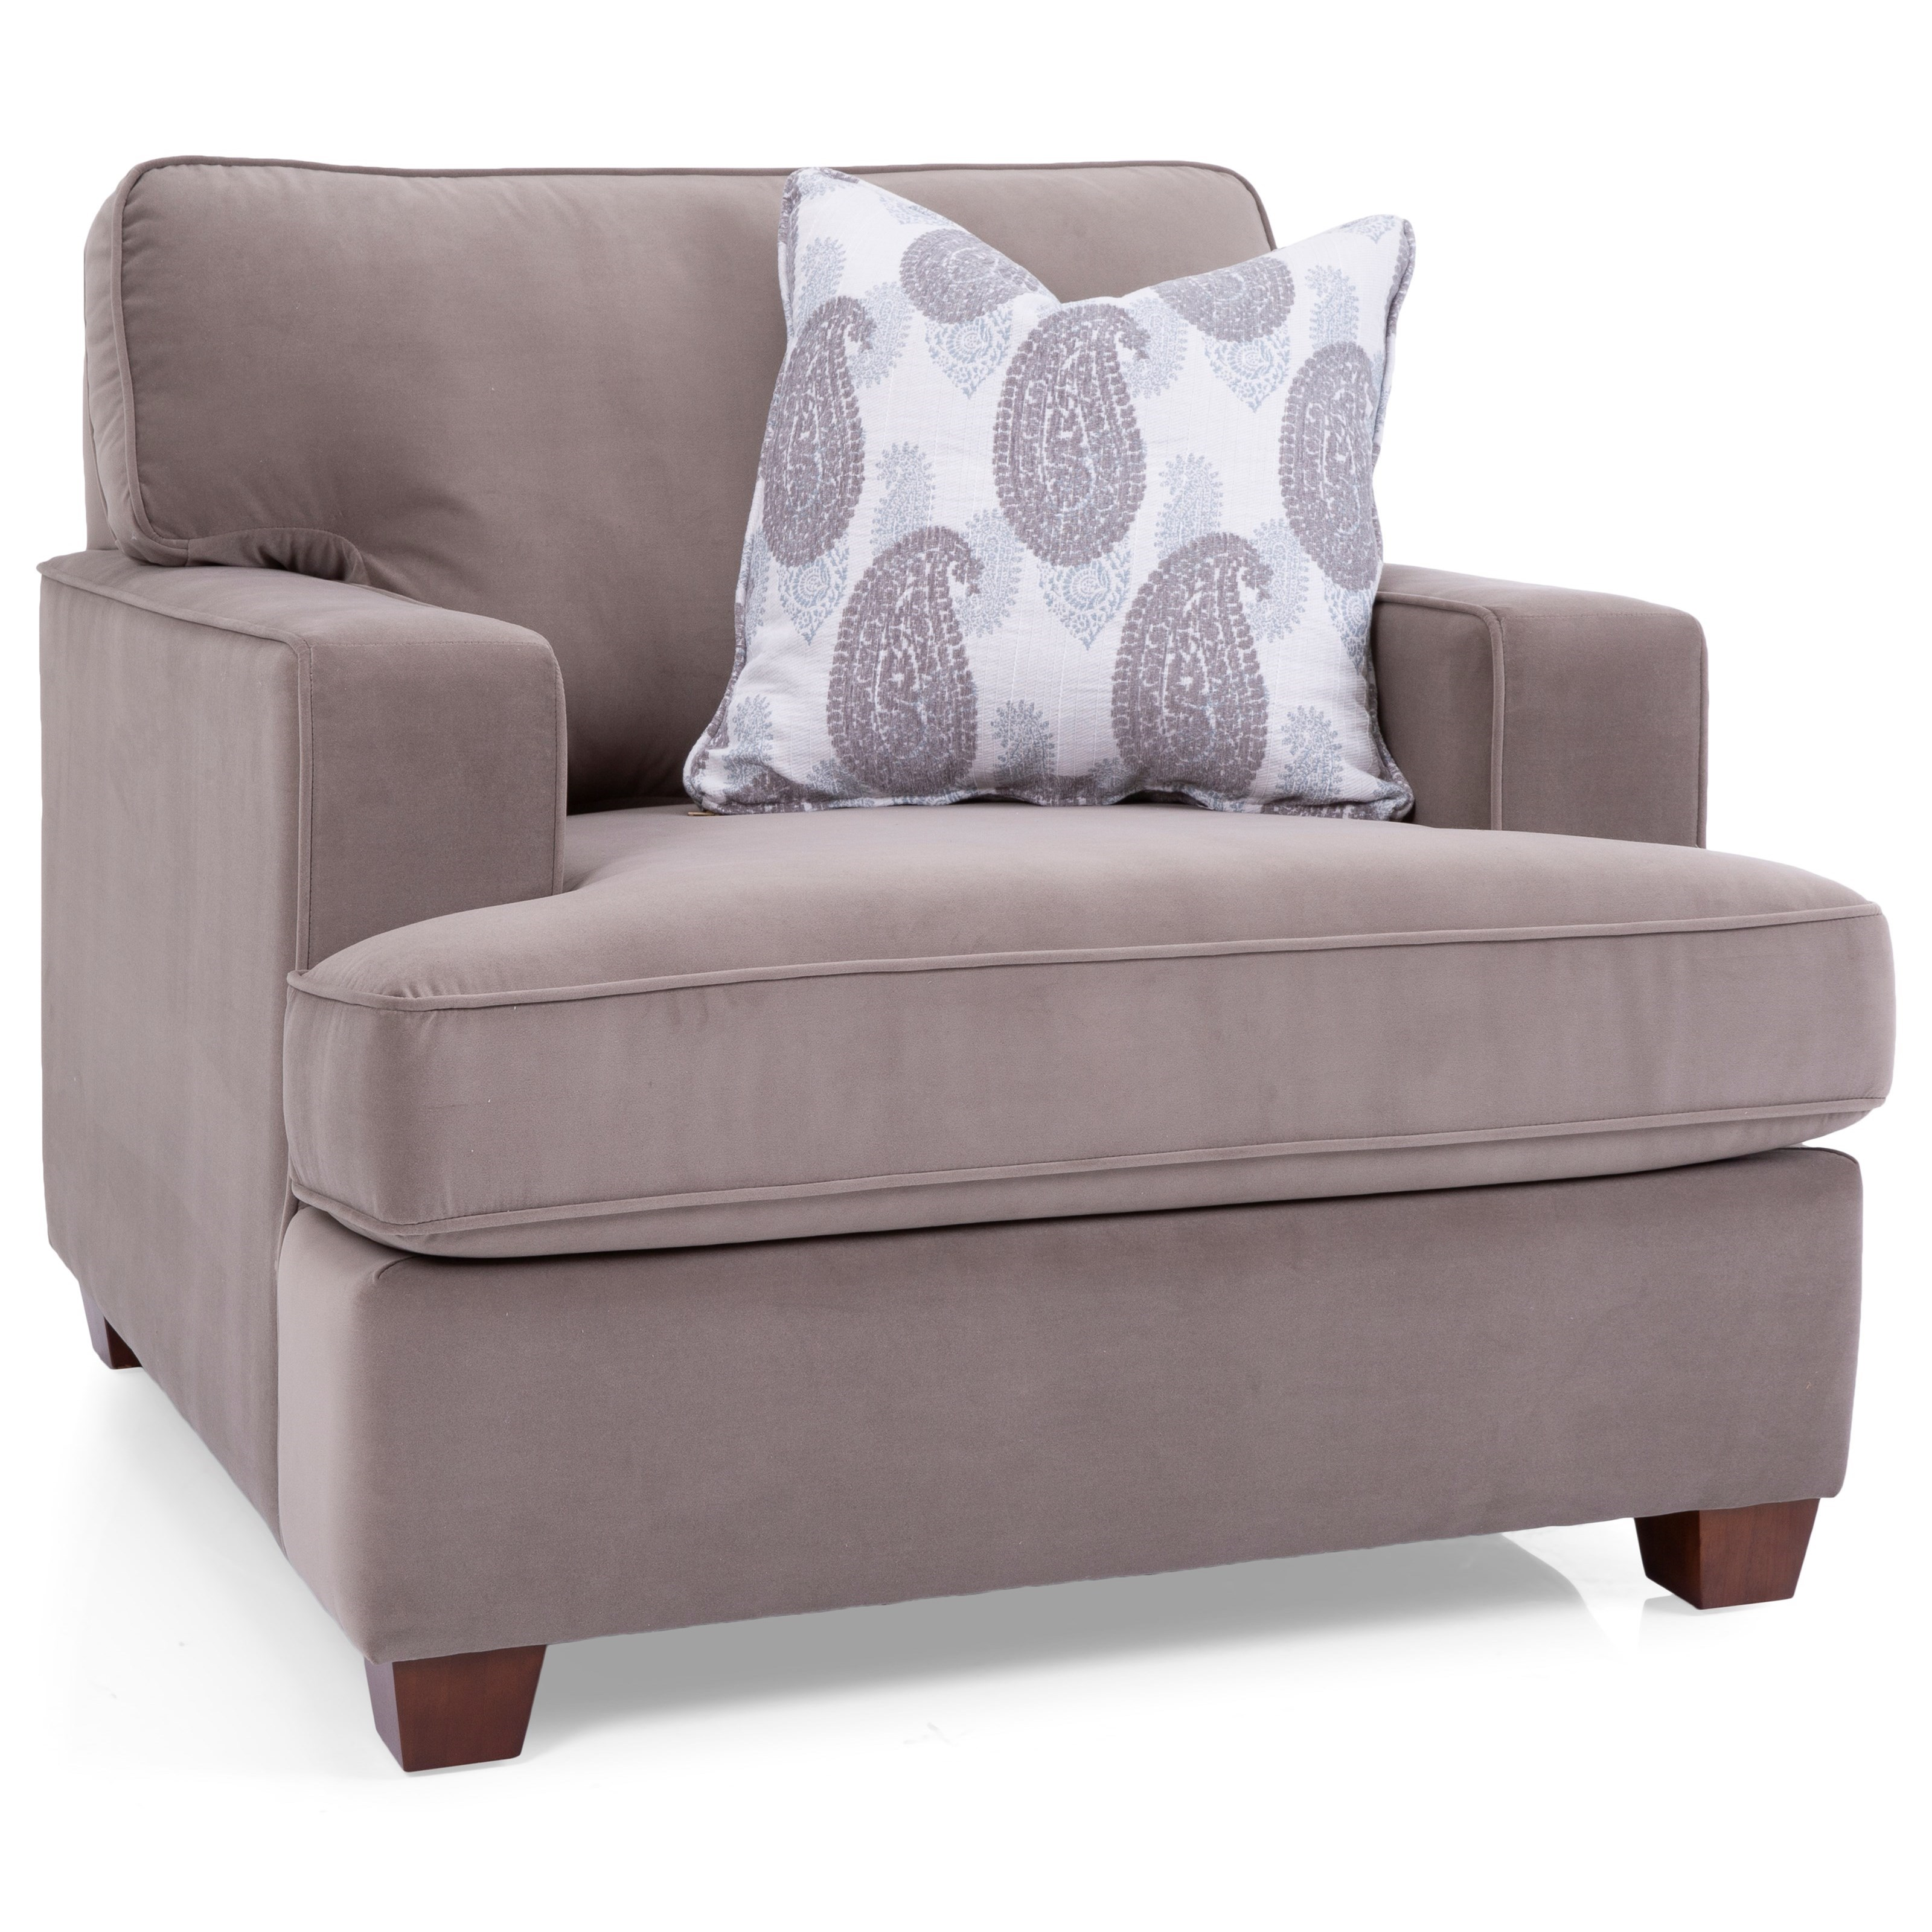 2052 Chair by Decor-Rest at Rooms for Less